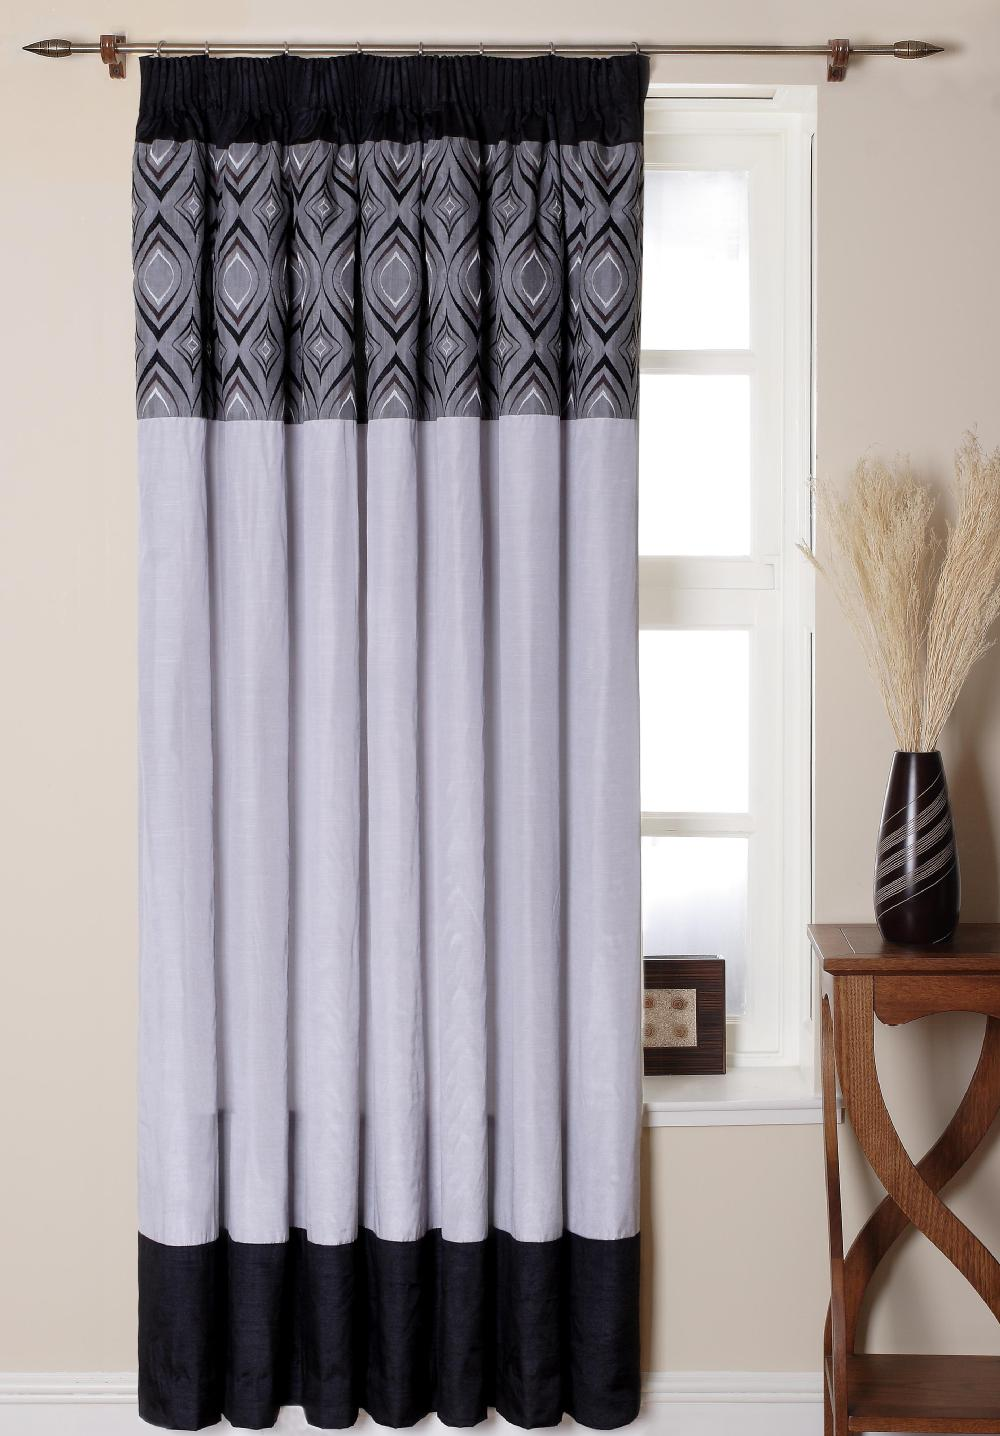 Charming Black And White Patterned Curtains Black Blackout Curtains From China  Supplier